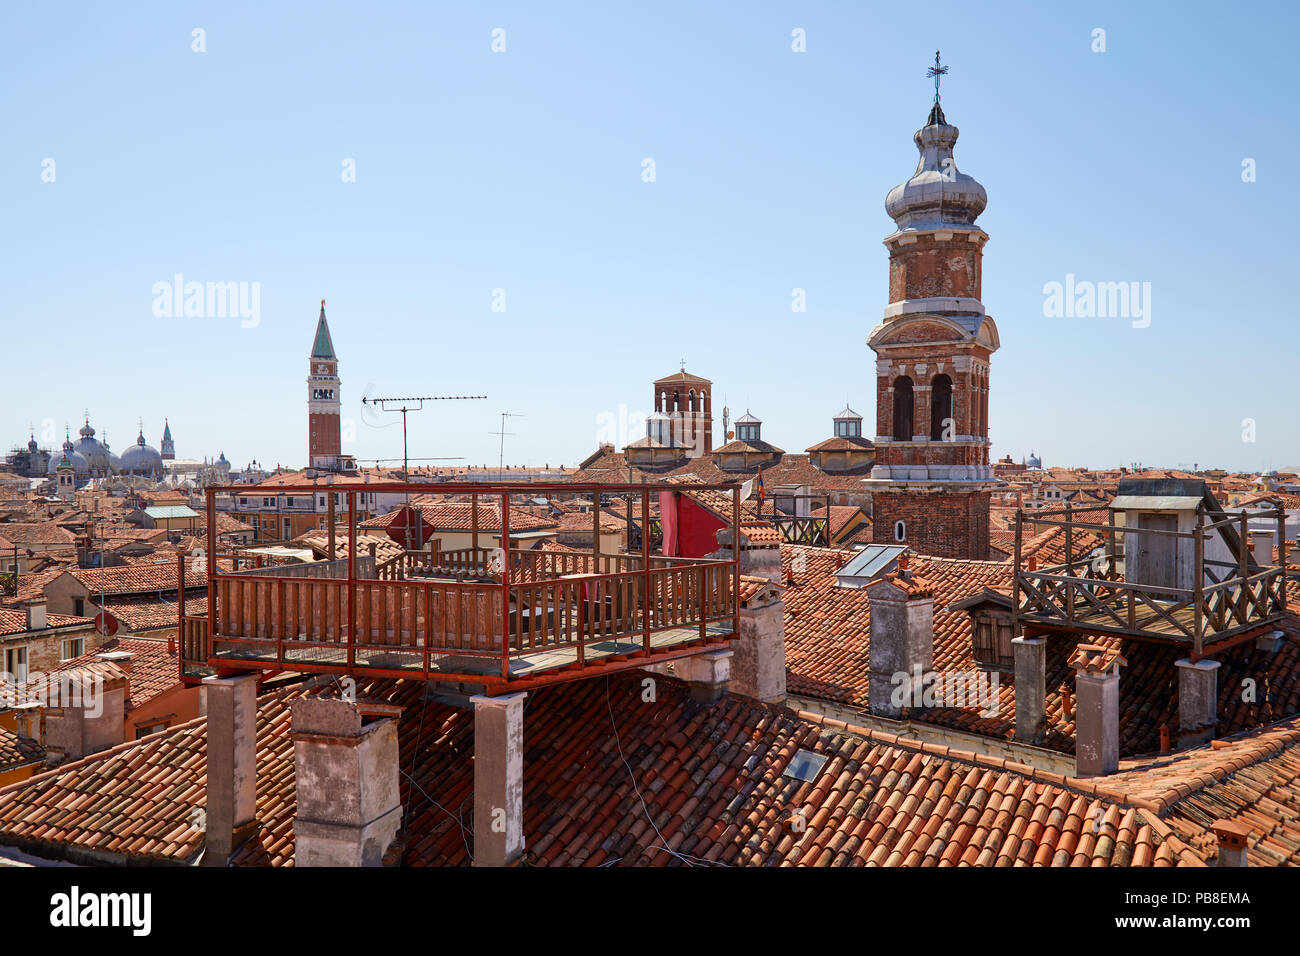 Elevated view of Venice roofs with typical altana balcony and San Marco bell tower in summer, Italy - Stock Image